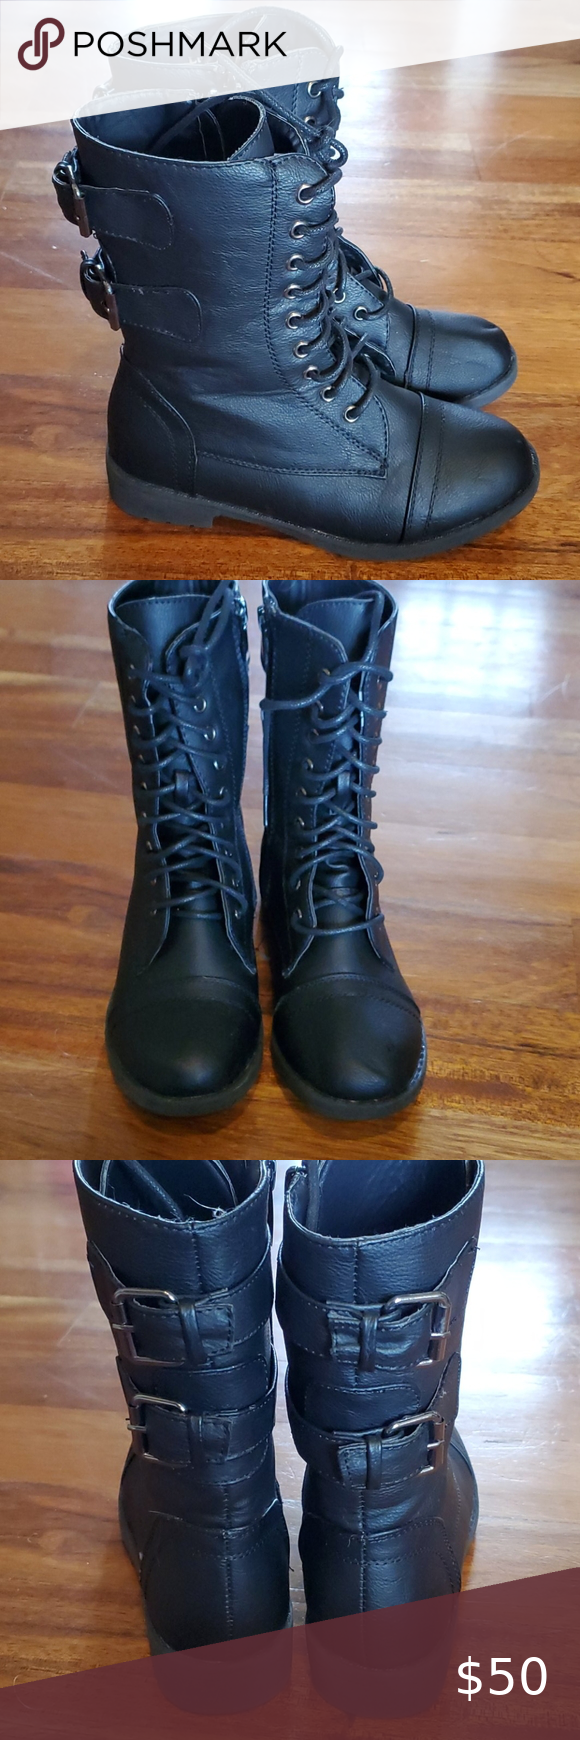 Girls Black Combat Boots size 2 in 2020